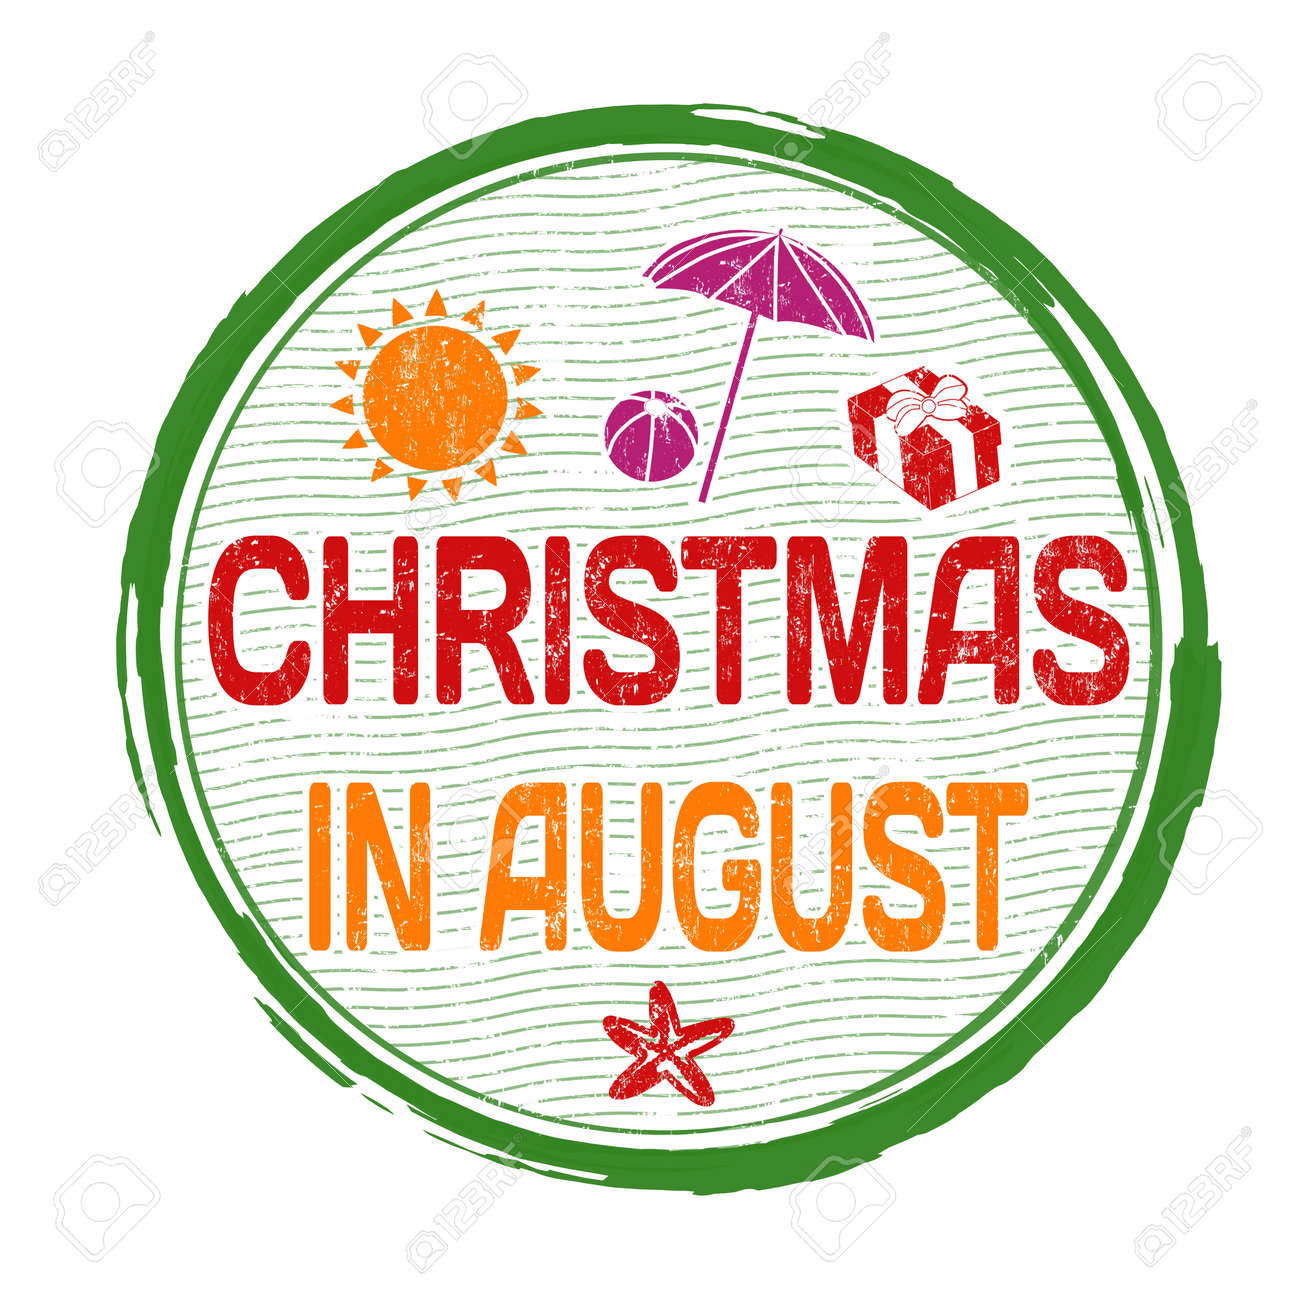 Christmas Music In August.Christmas In August Grunge Rubber Stamp On White